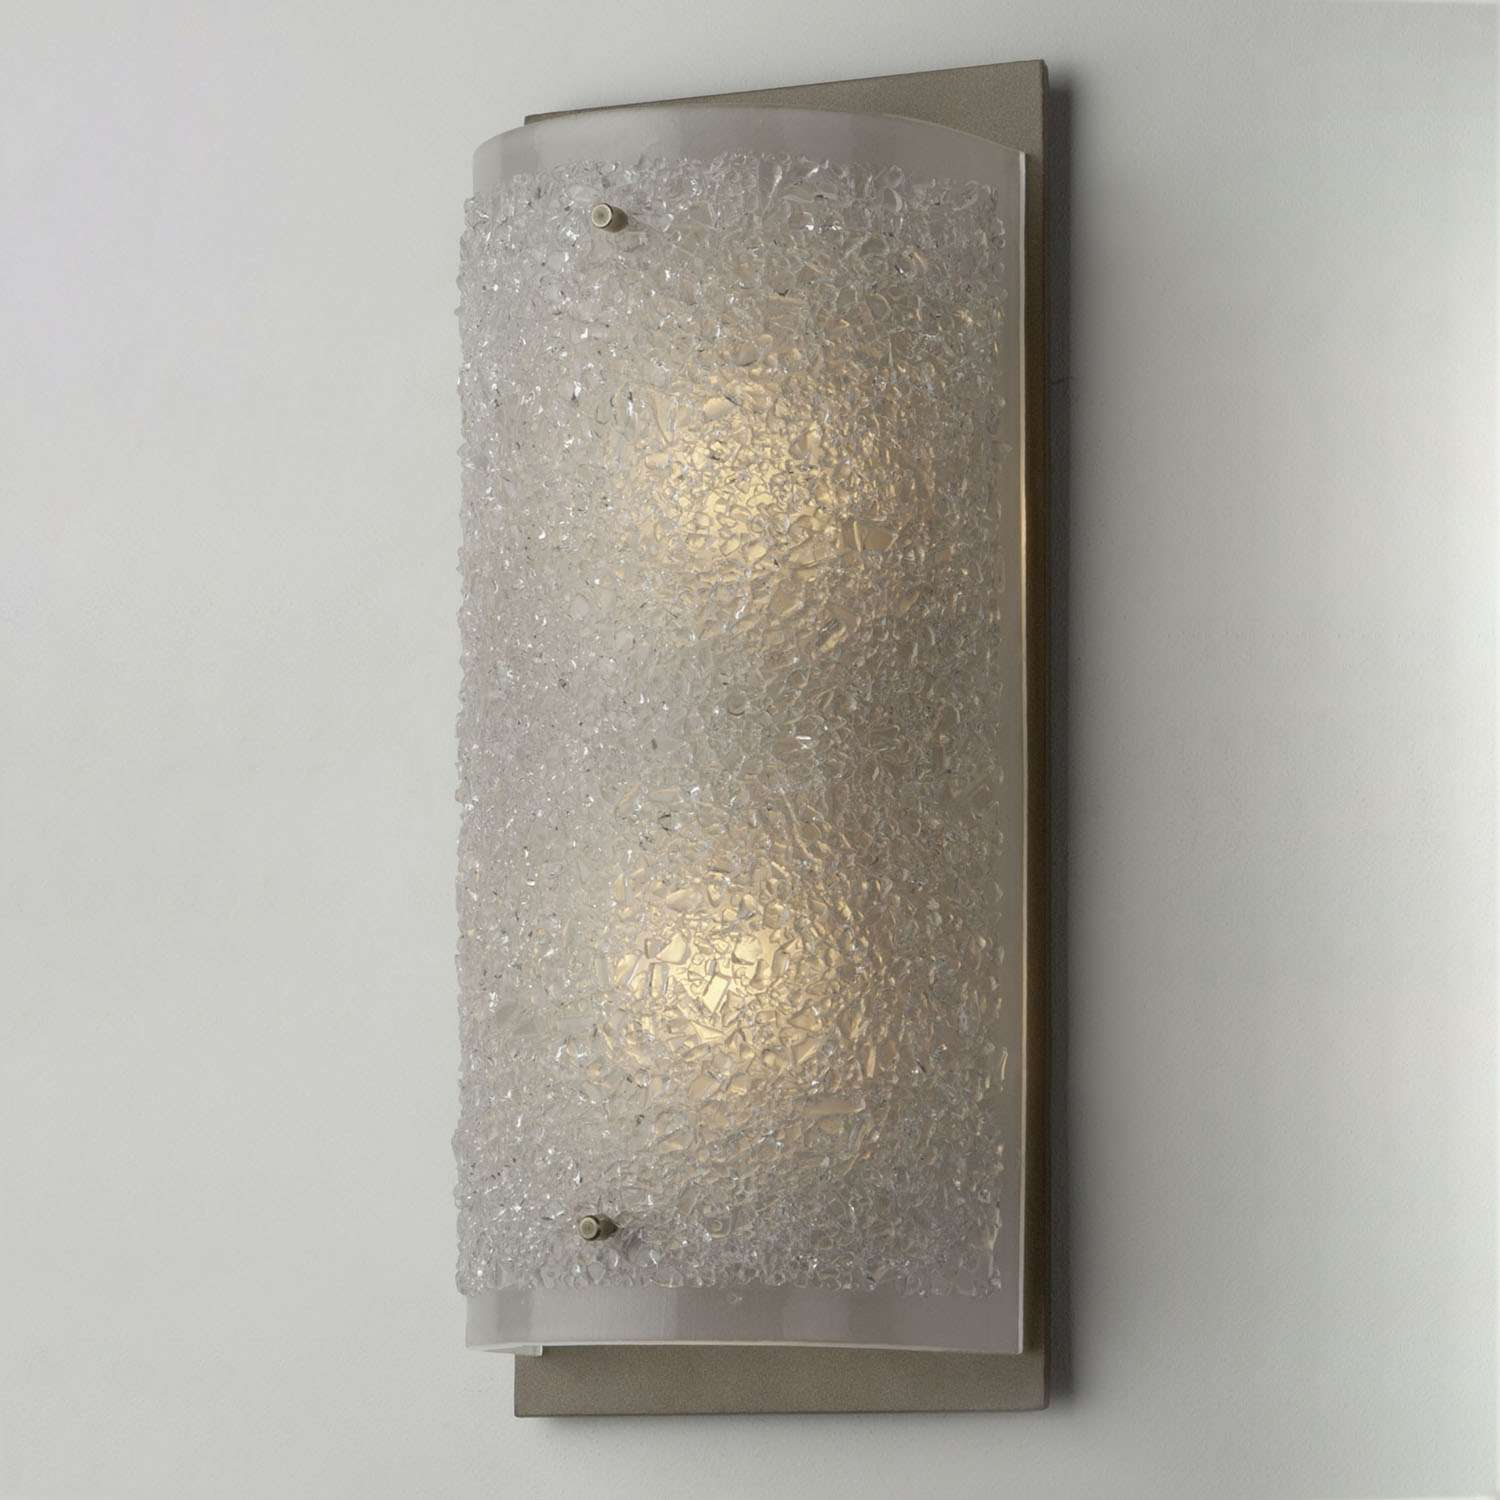 Image of: Flat Wall Sconce Covers